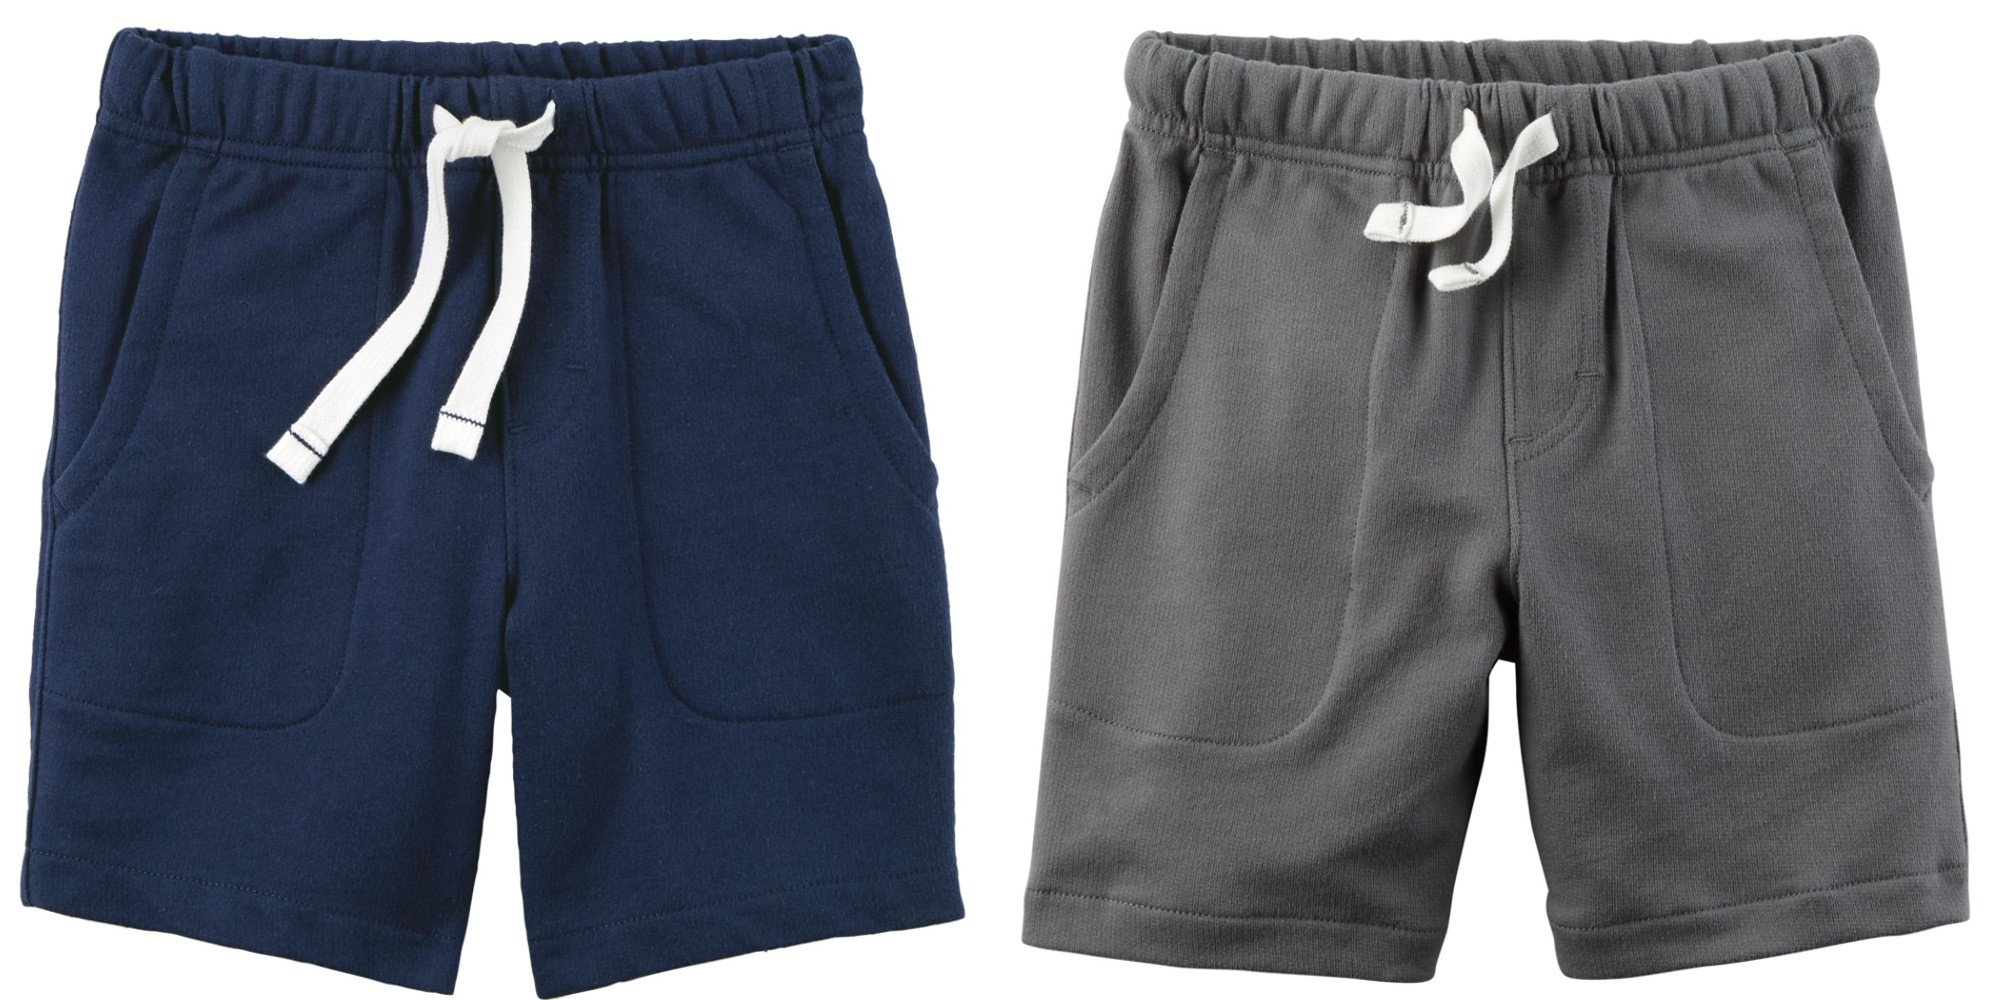 Carter's Set of 2 Boy's Cotton Pull On Shorts Toddler Little and Big Boys (5T, Dark Grey and Navy Blue) by Carter's Baby Clothing (Image #1)